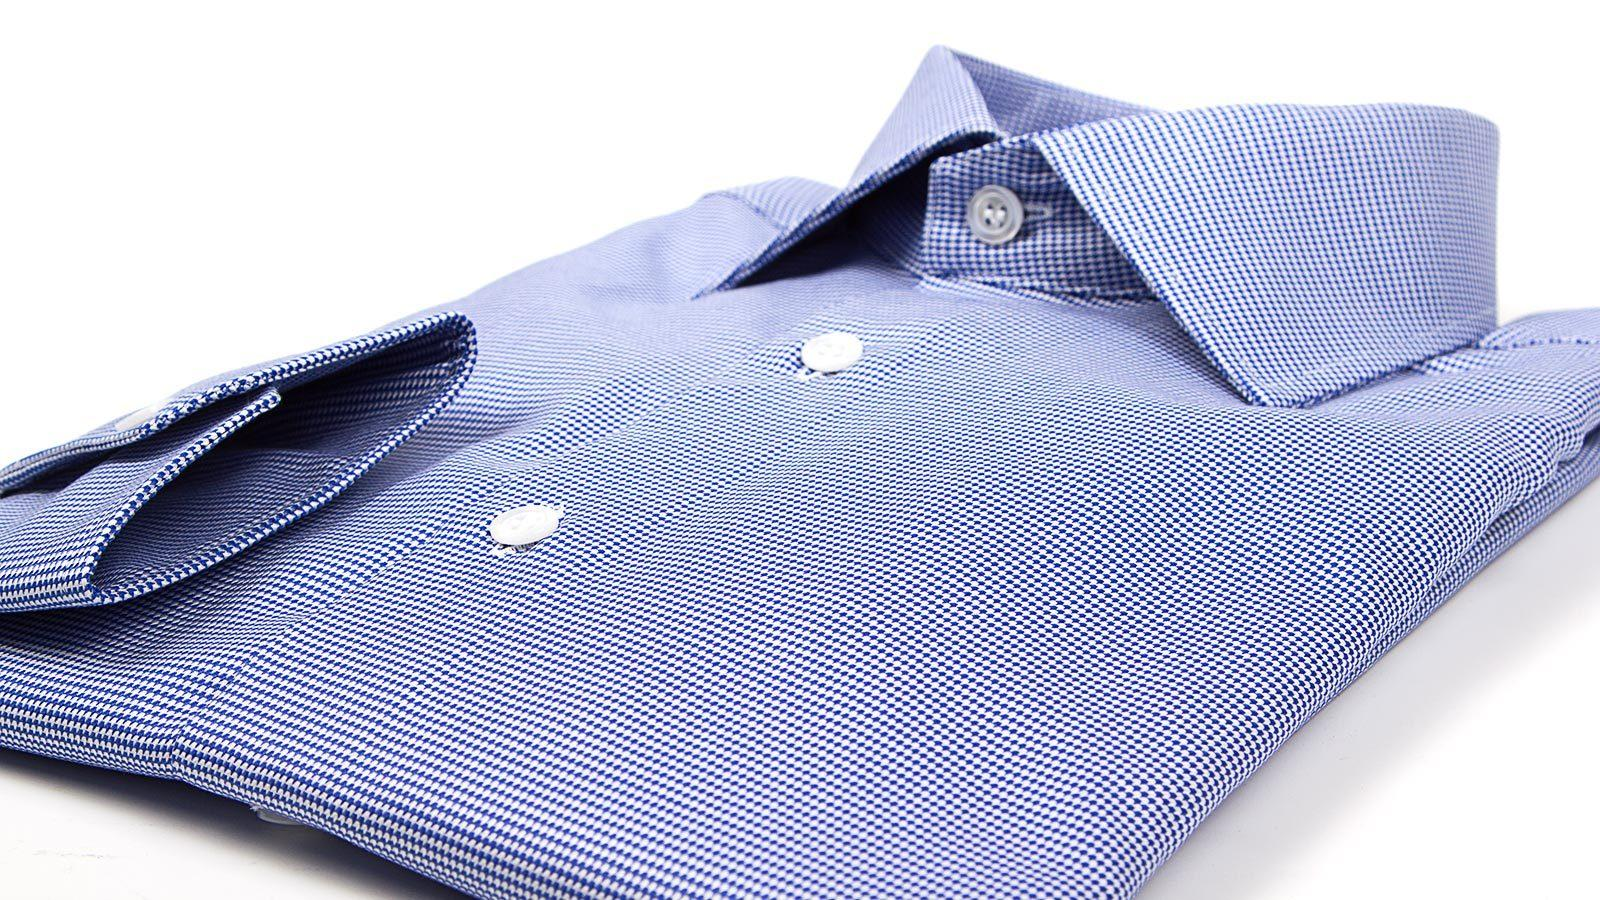 Micropatterned Blue Cotton Shirt - slider image 1